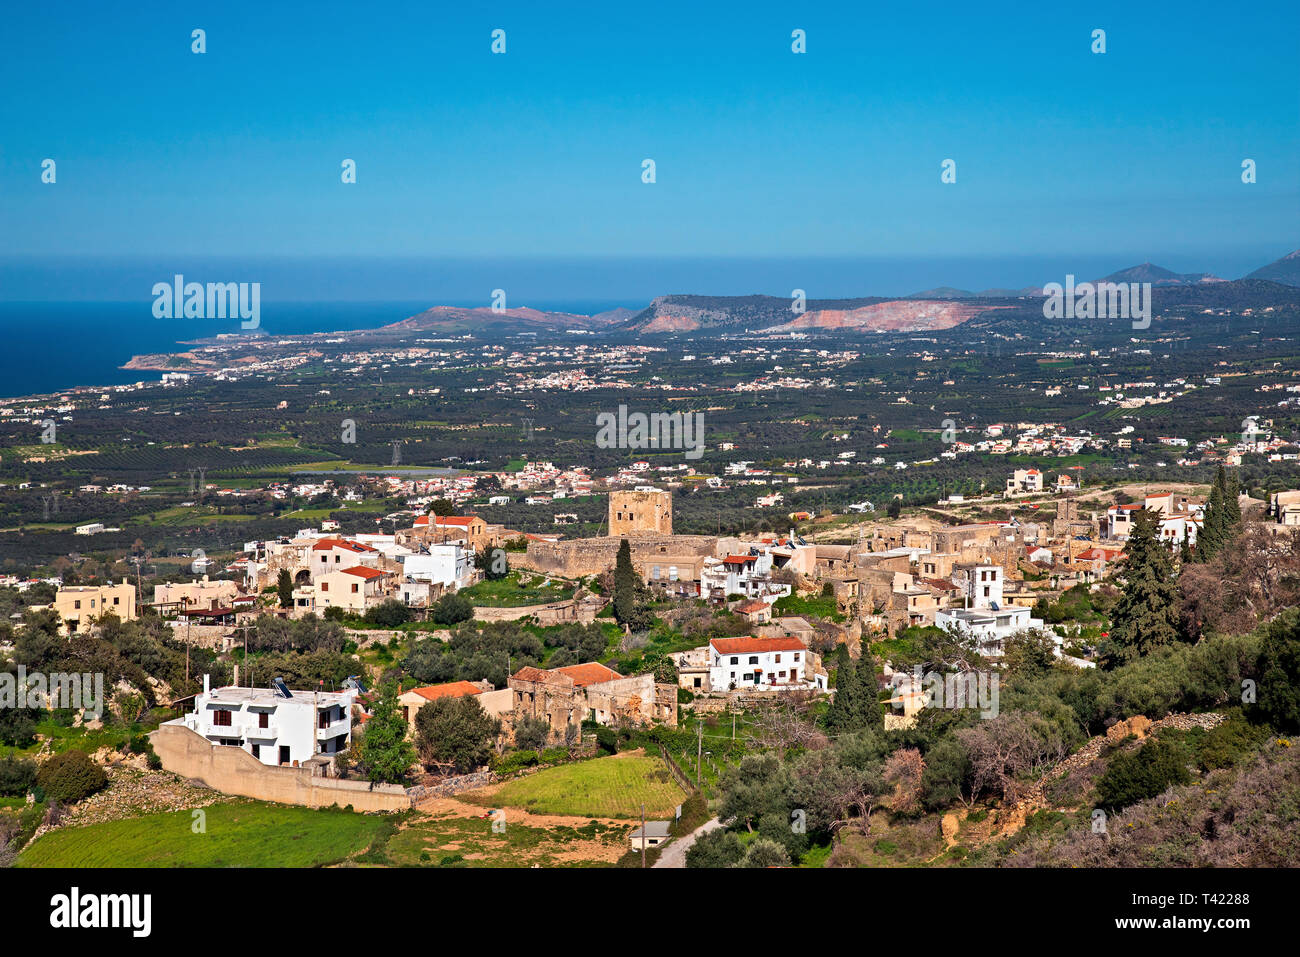 Panoramic view of Maroulas village (Rethimno, Crete, Greece), known for its 2 old, Venetian towers. - Stock Image